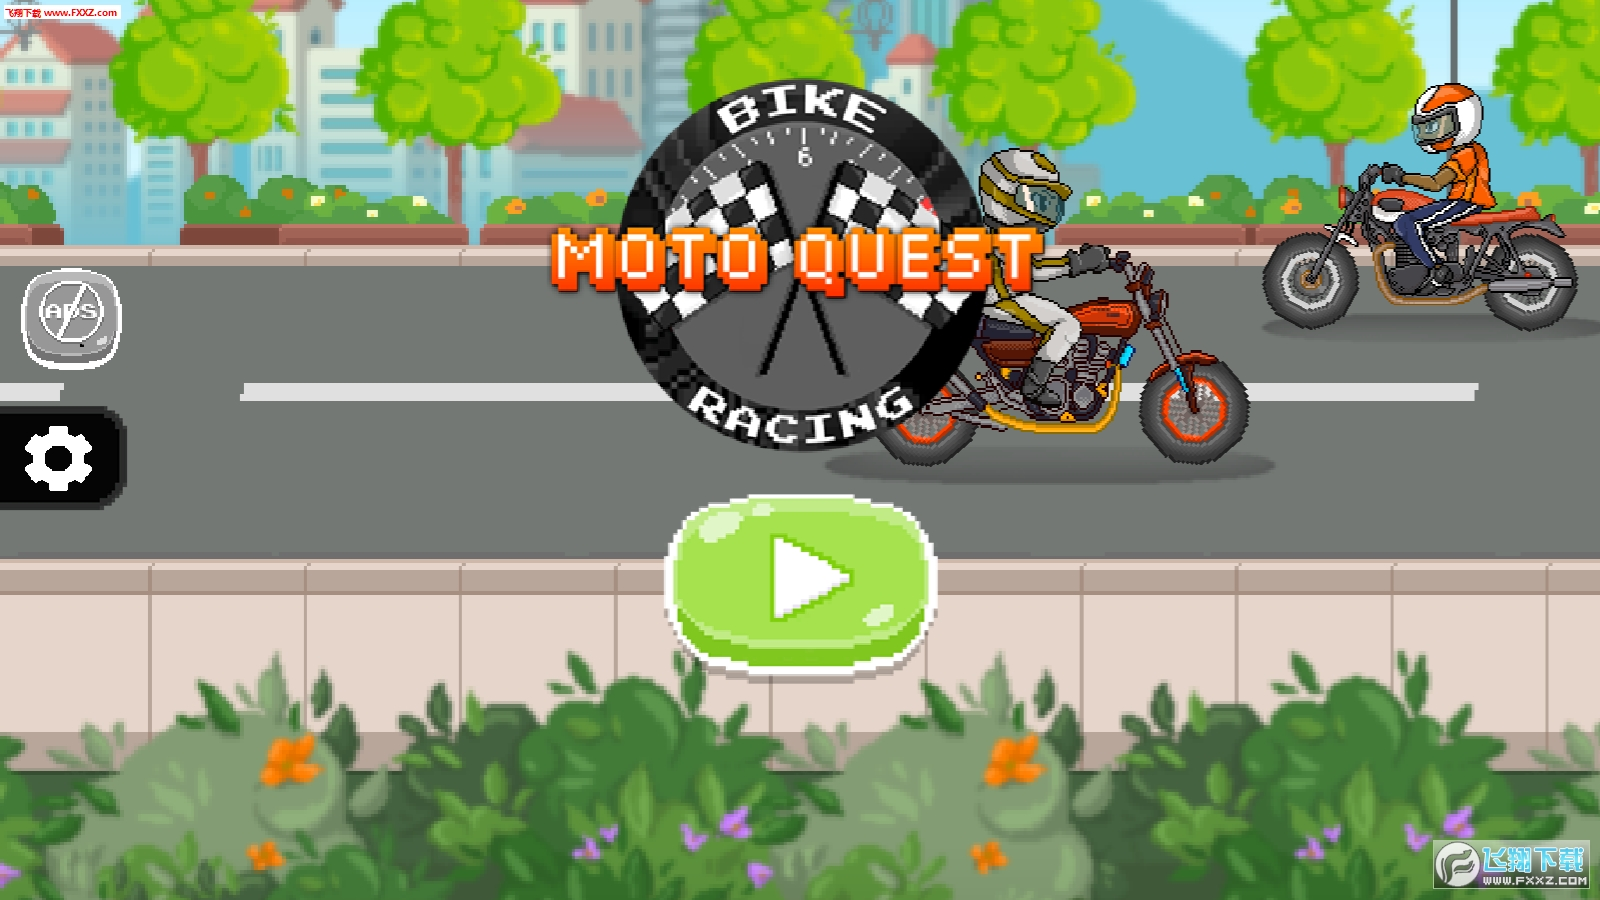 Moto uest Bike racing手游截图0